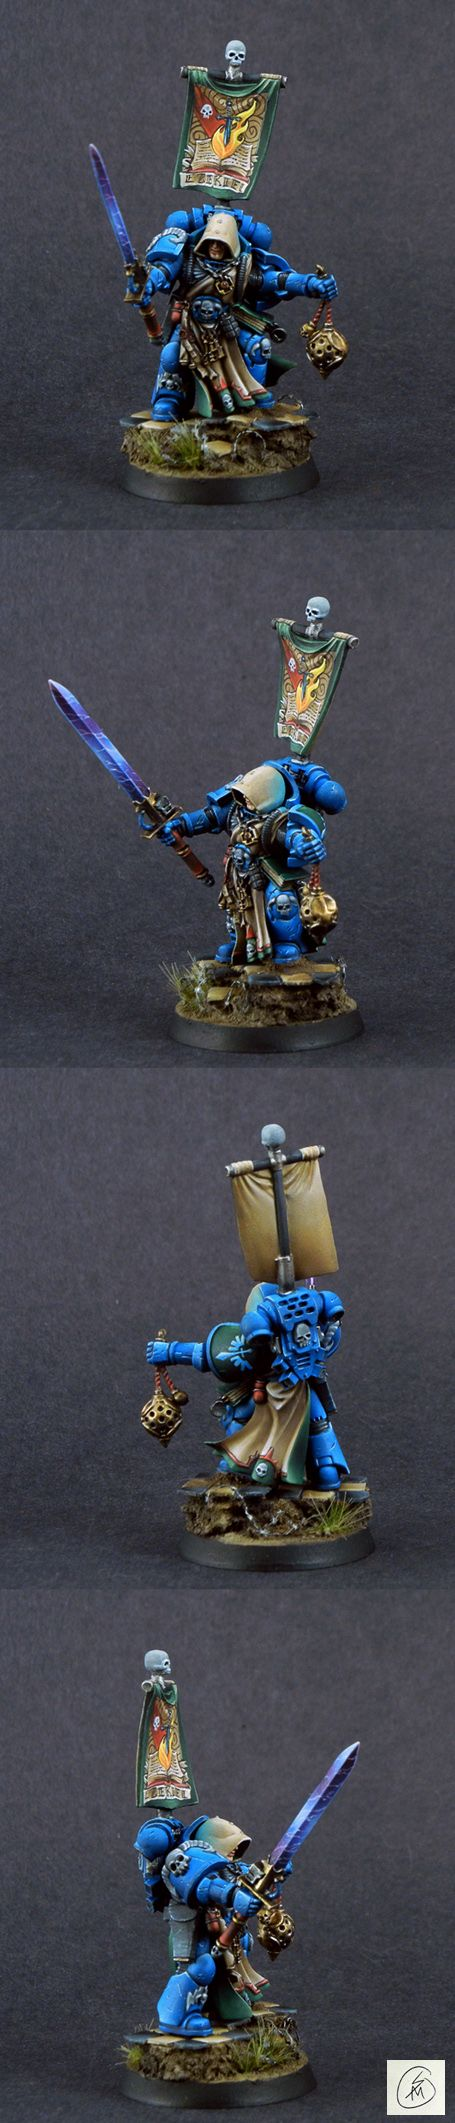 Painting miniatures color master primer - The Internet S Largest Gallery Of Painted Miniatures With A Large Repository Of How To Articles On Miniature Painting